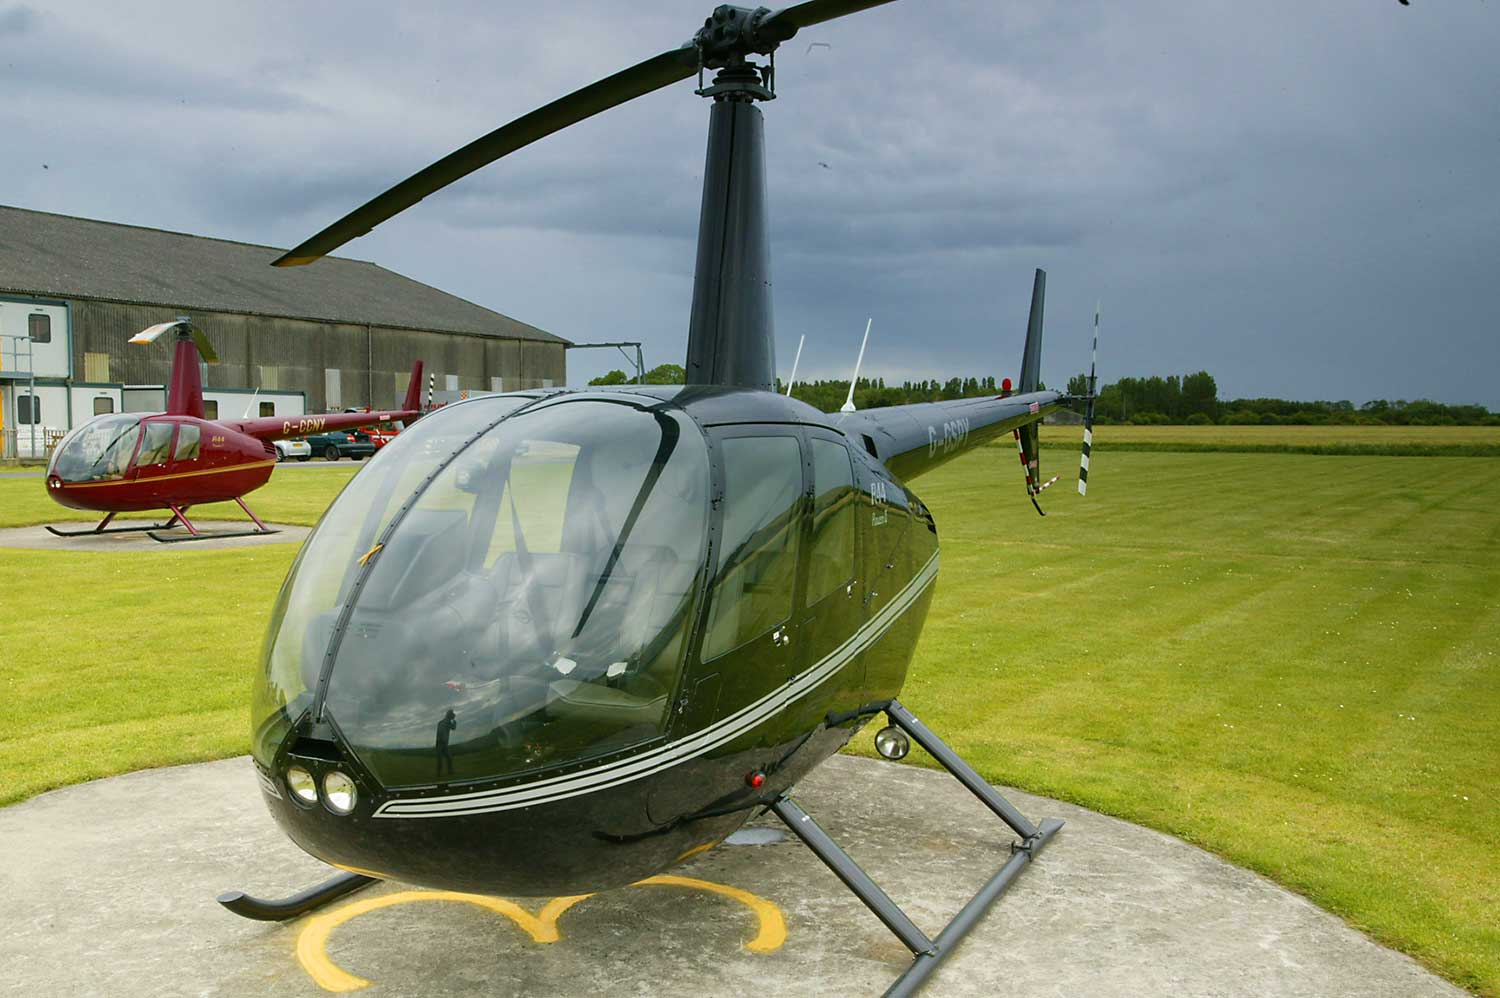 r44 helicopter for sale uk with Helicopter Pol Training Yorkshire Robinson R44 on 361 also Helicopter Pol Training Yorkshire Robinson R44 besides G Wwow Private Robinson R44 Astro Raven likewise Stock Photo Robinson R44 Raven Four Seat Private Helicopter 8767841 likewise Military Reveals Revolutionary Pilotless Cargo Drone Deliver Supplies Territories Plagued Roadside Bombs.